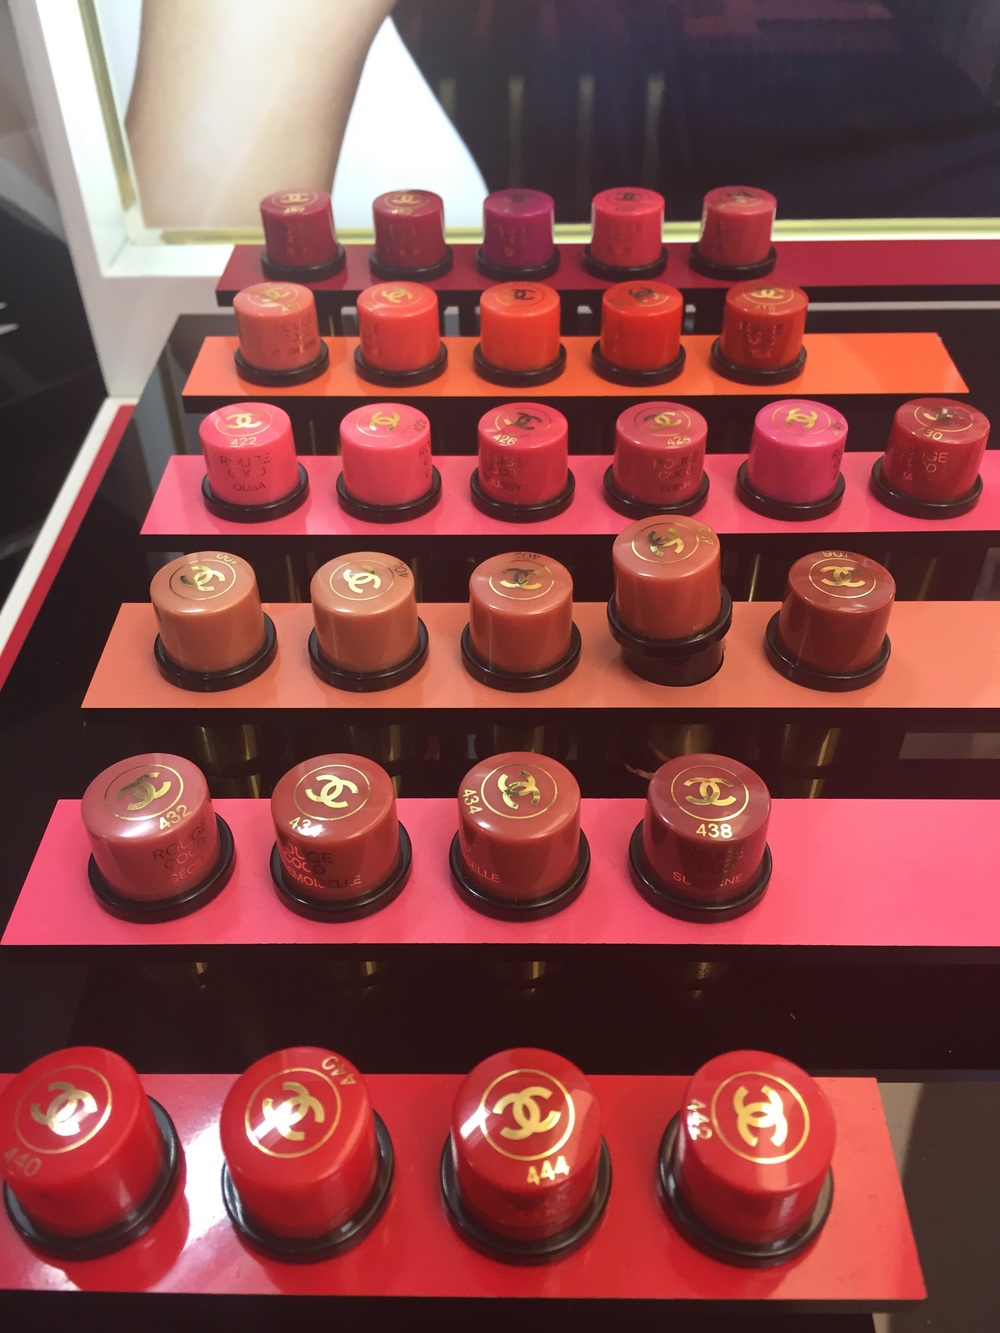 The new Rouge Coco Chanel lipsticks